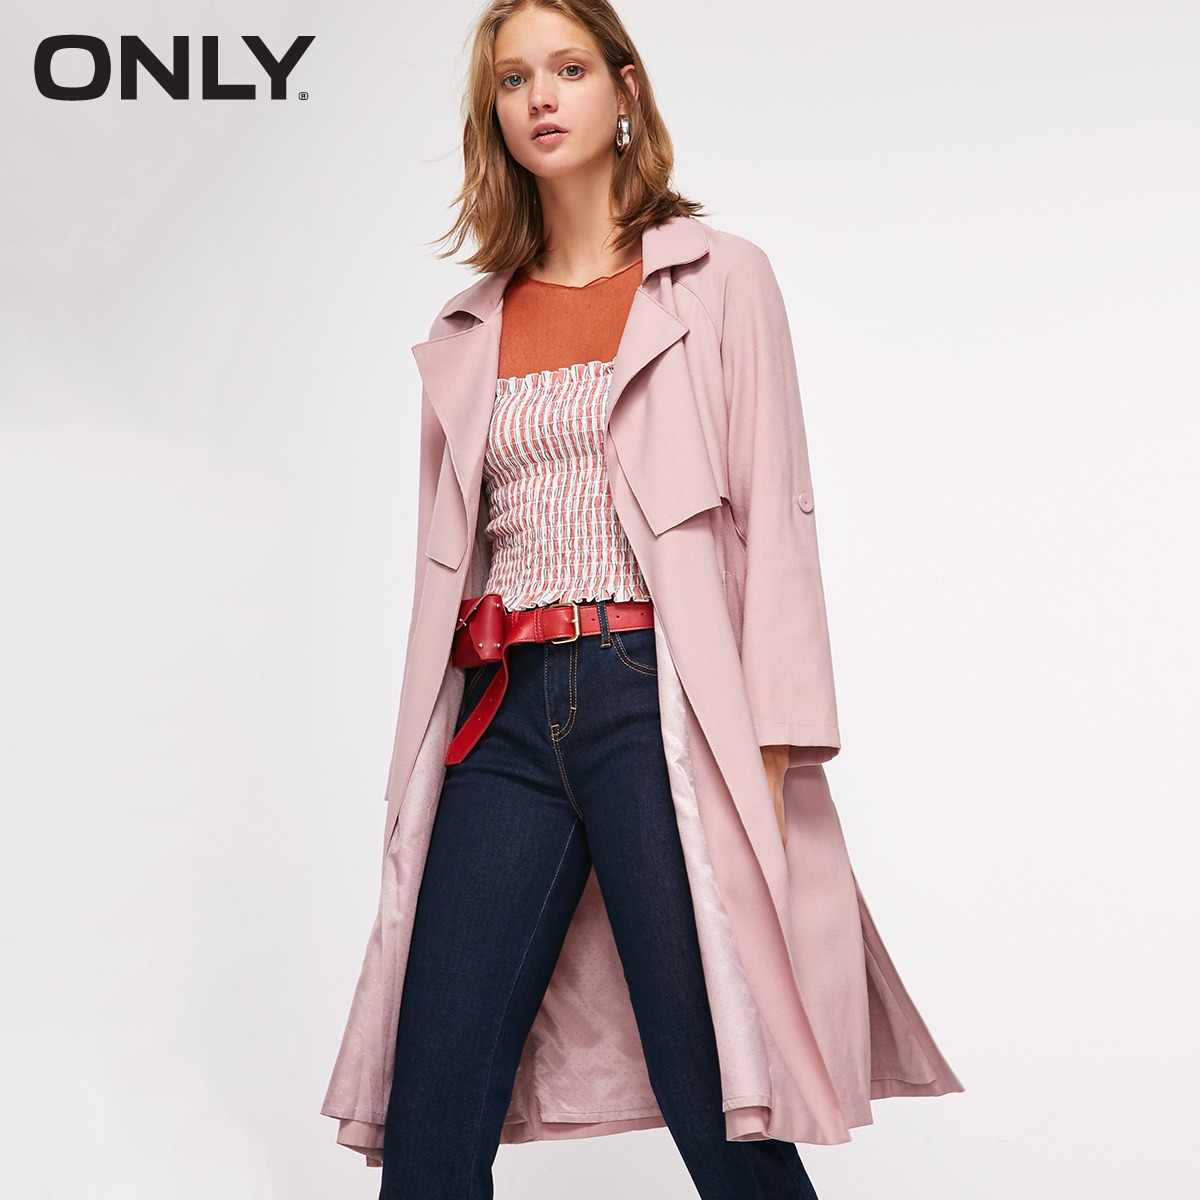 ONLY Spring Summer New Women's Slim Fit Adjustable Sleeves Side Slits Long Wind Coat |118336549